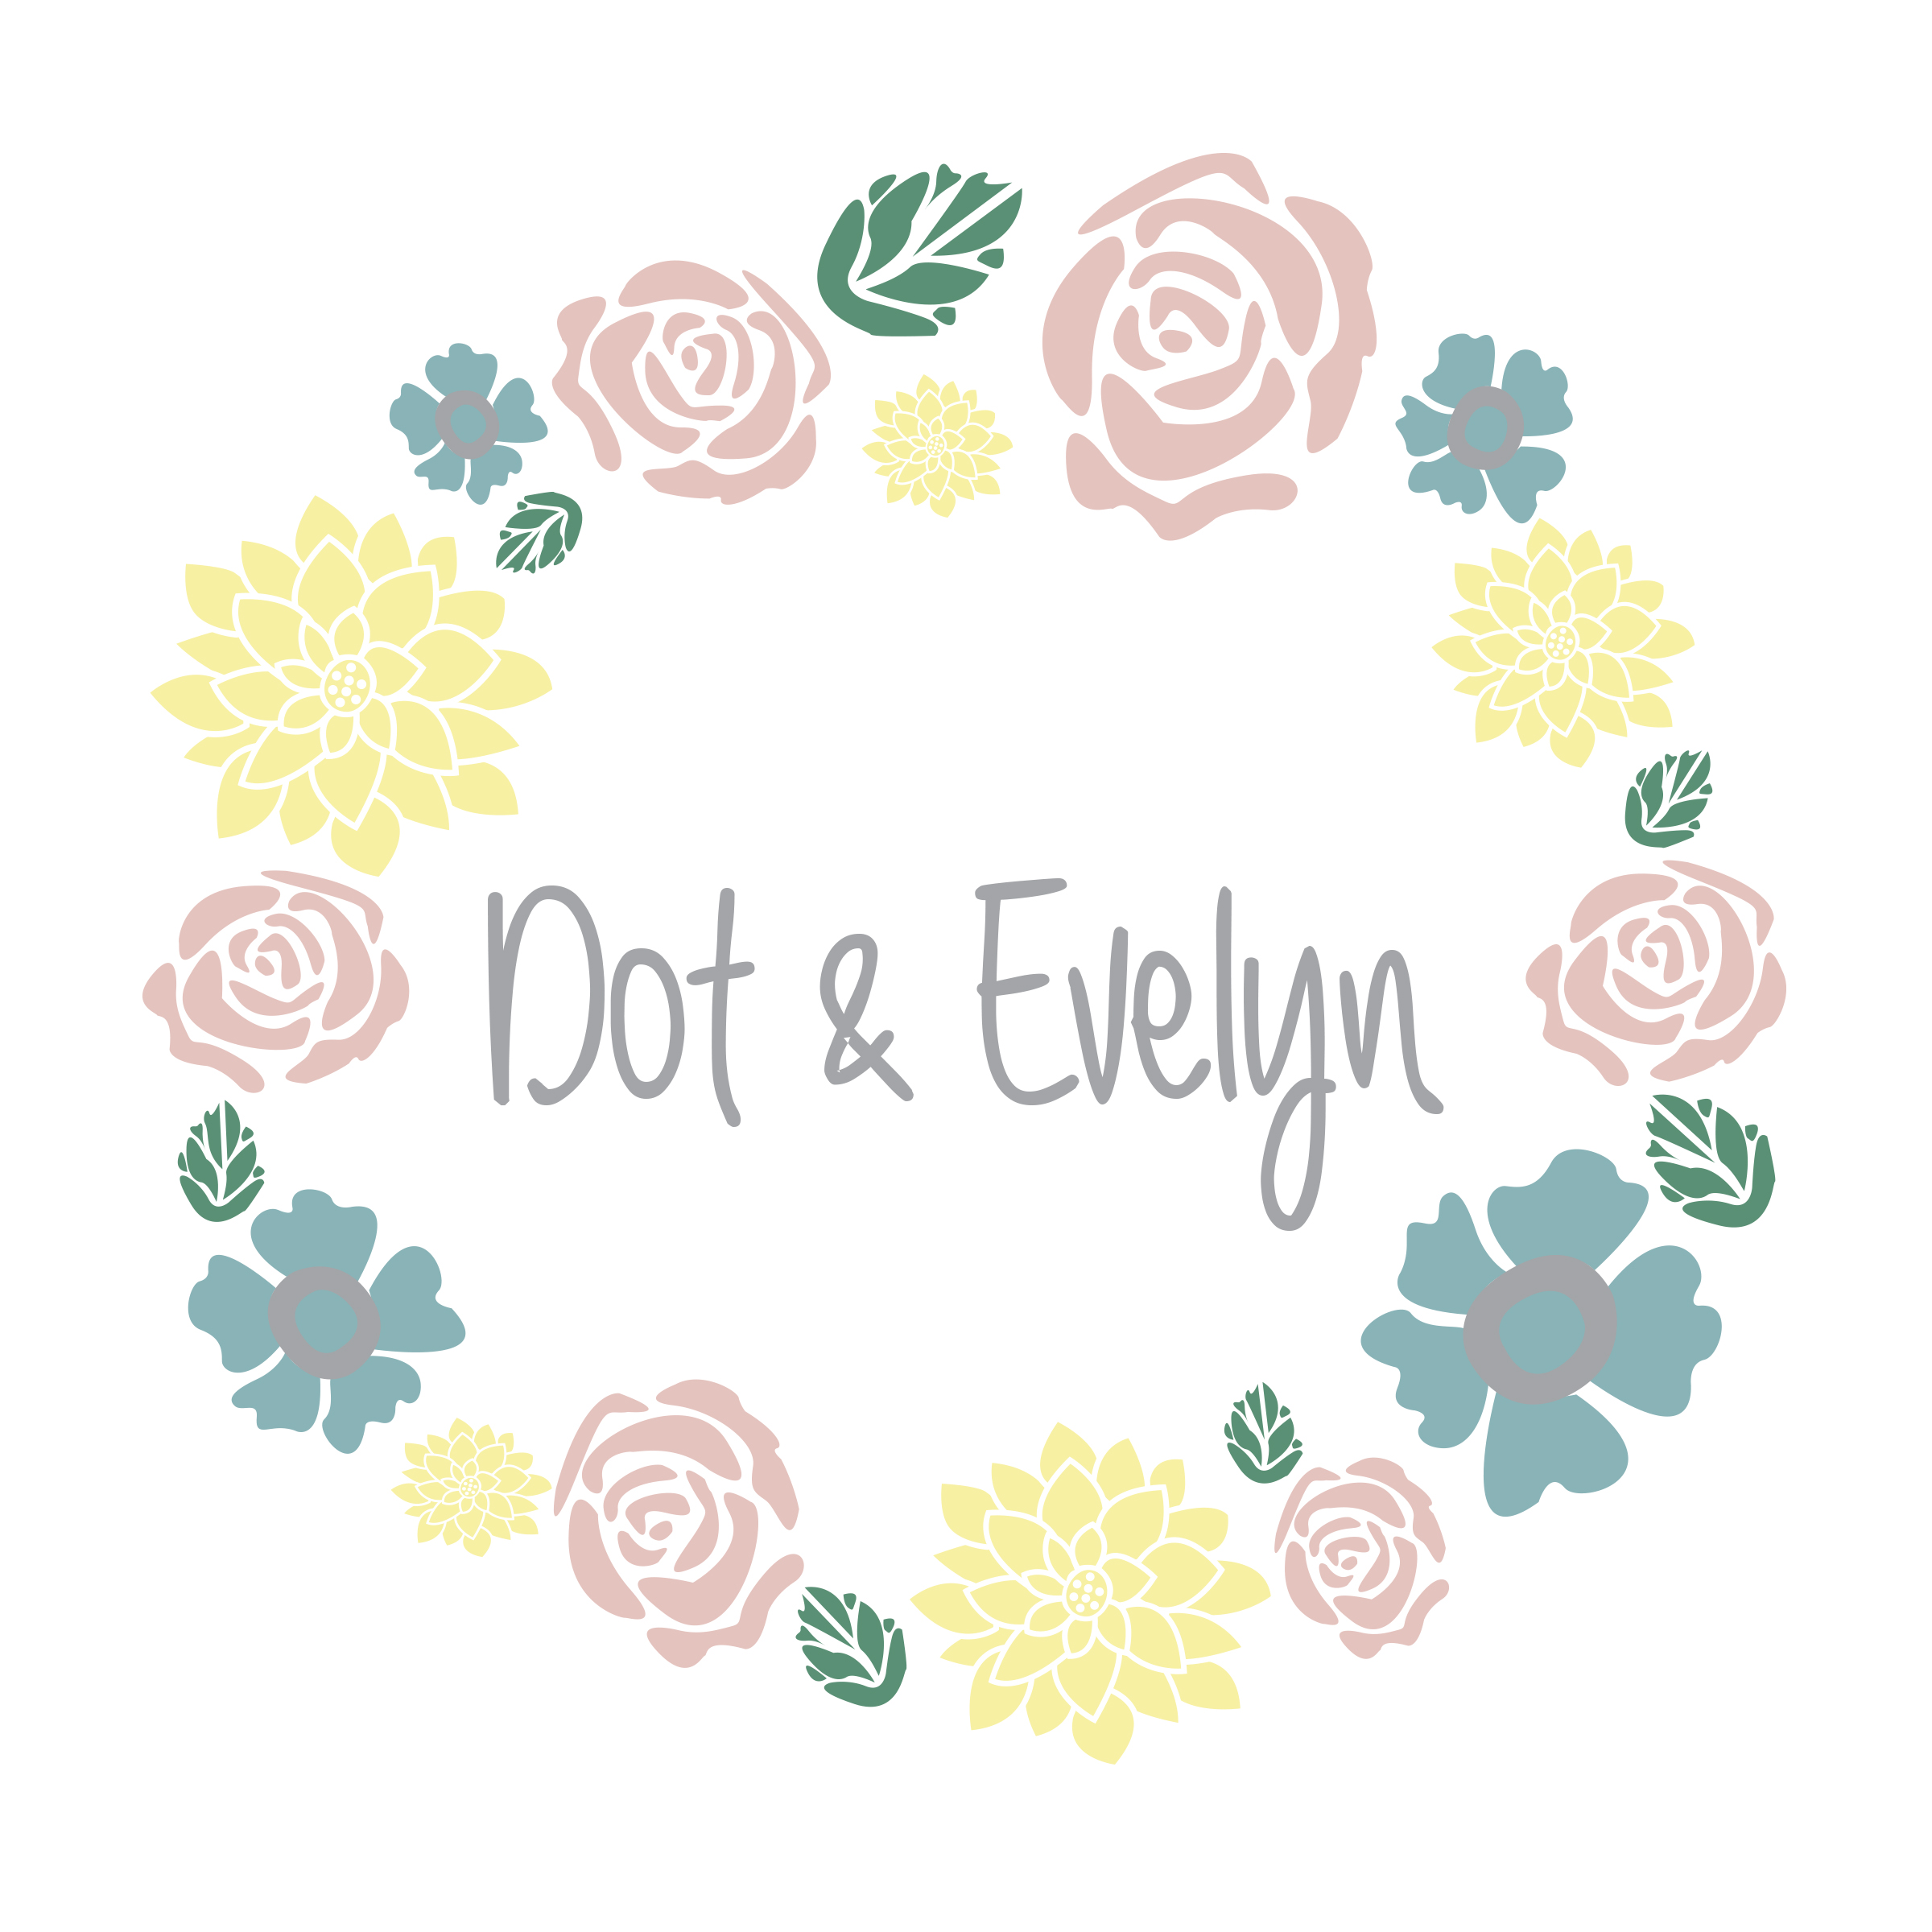 Dot & Evelyn Logo.jpg